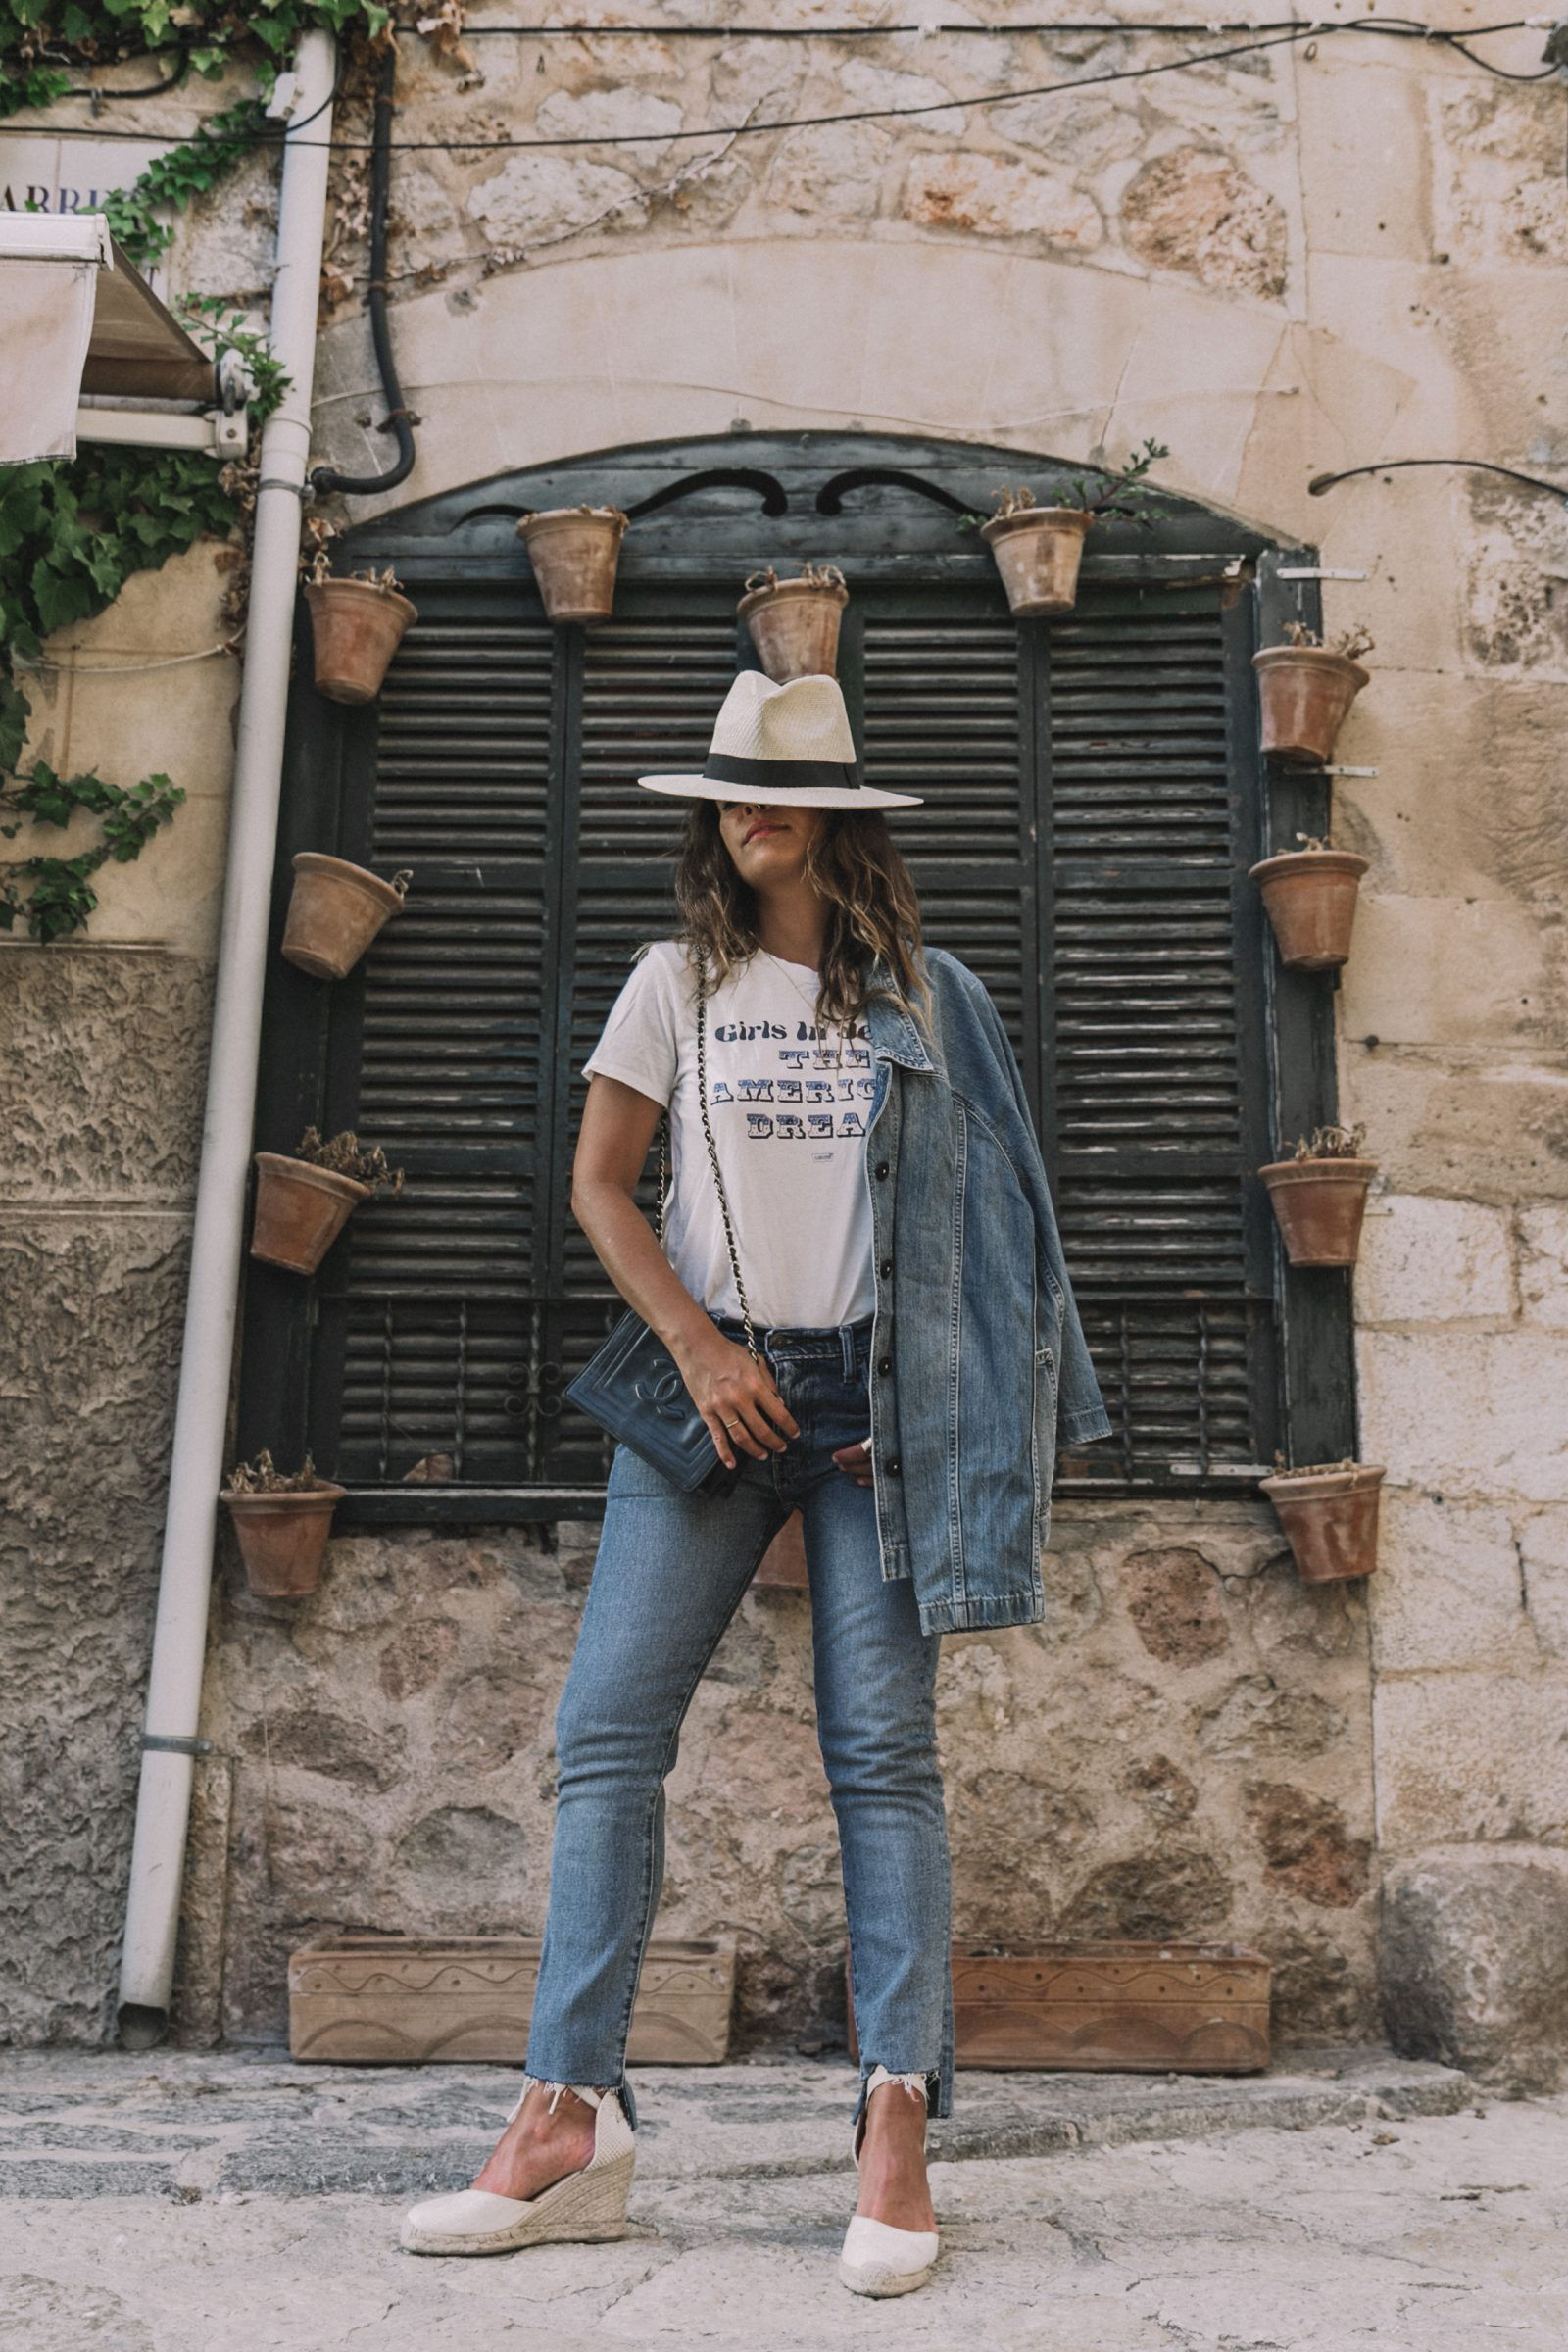 Live_in_Levis-Denim-Who_What_Wear-Levis-Denim-Double_Denim-Menorca-Street_Style-Collage_Vintage-92